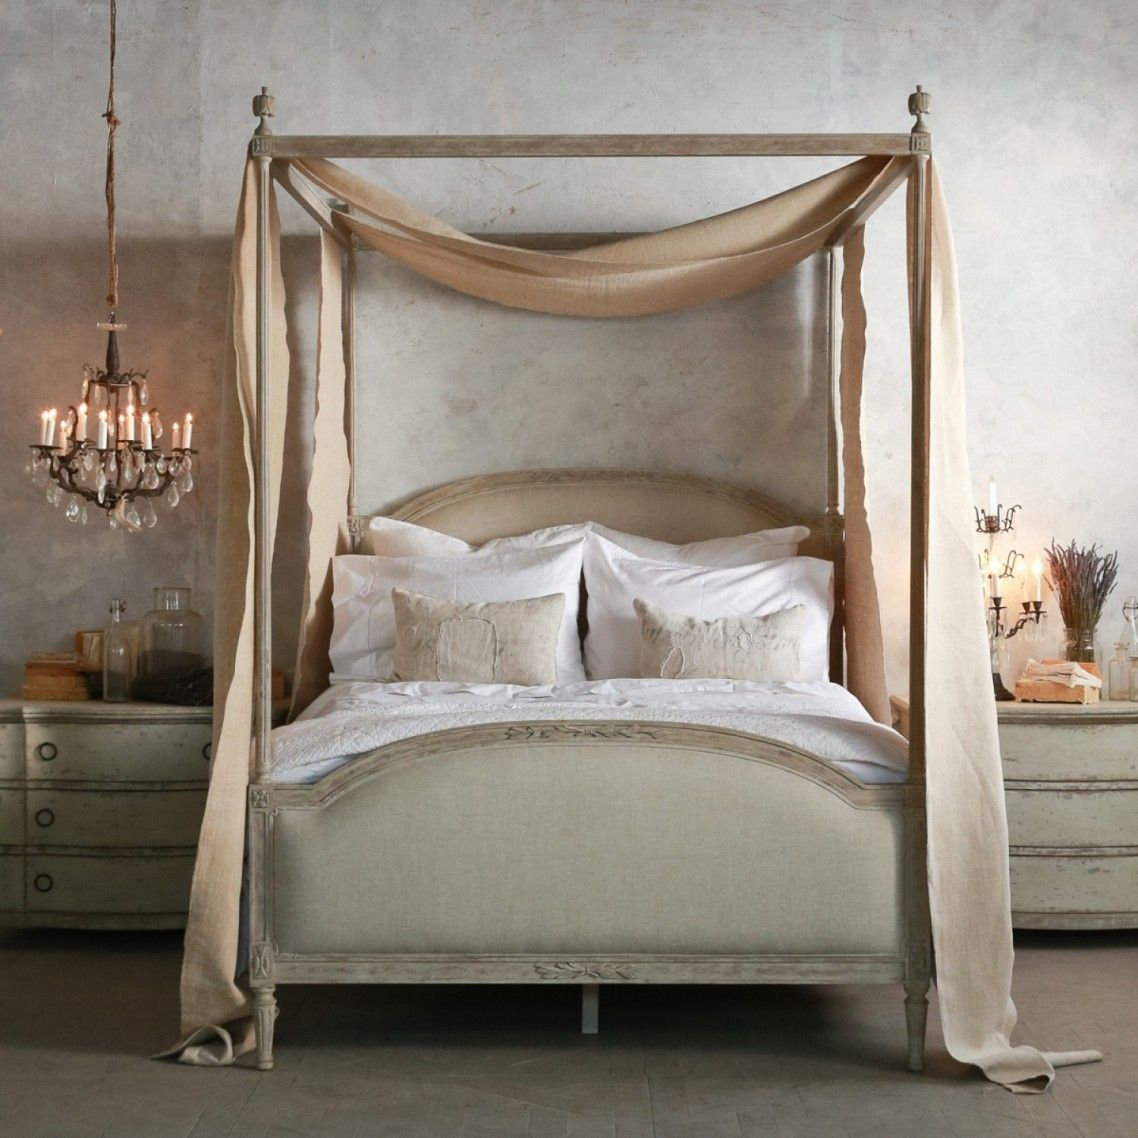 Small Bedroom Furniture Layout Bedroom Posters Vintage Bedroom Curtain Ideas Bedroom Interior Design For Kids: Minimalist Romantic Style Bedroom Decorating Ideas